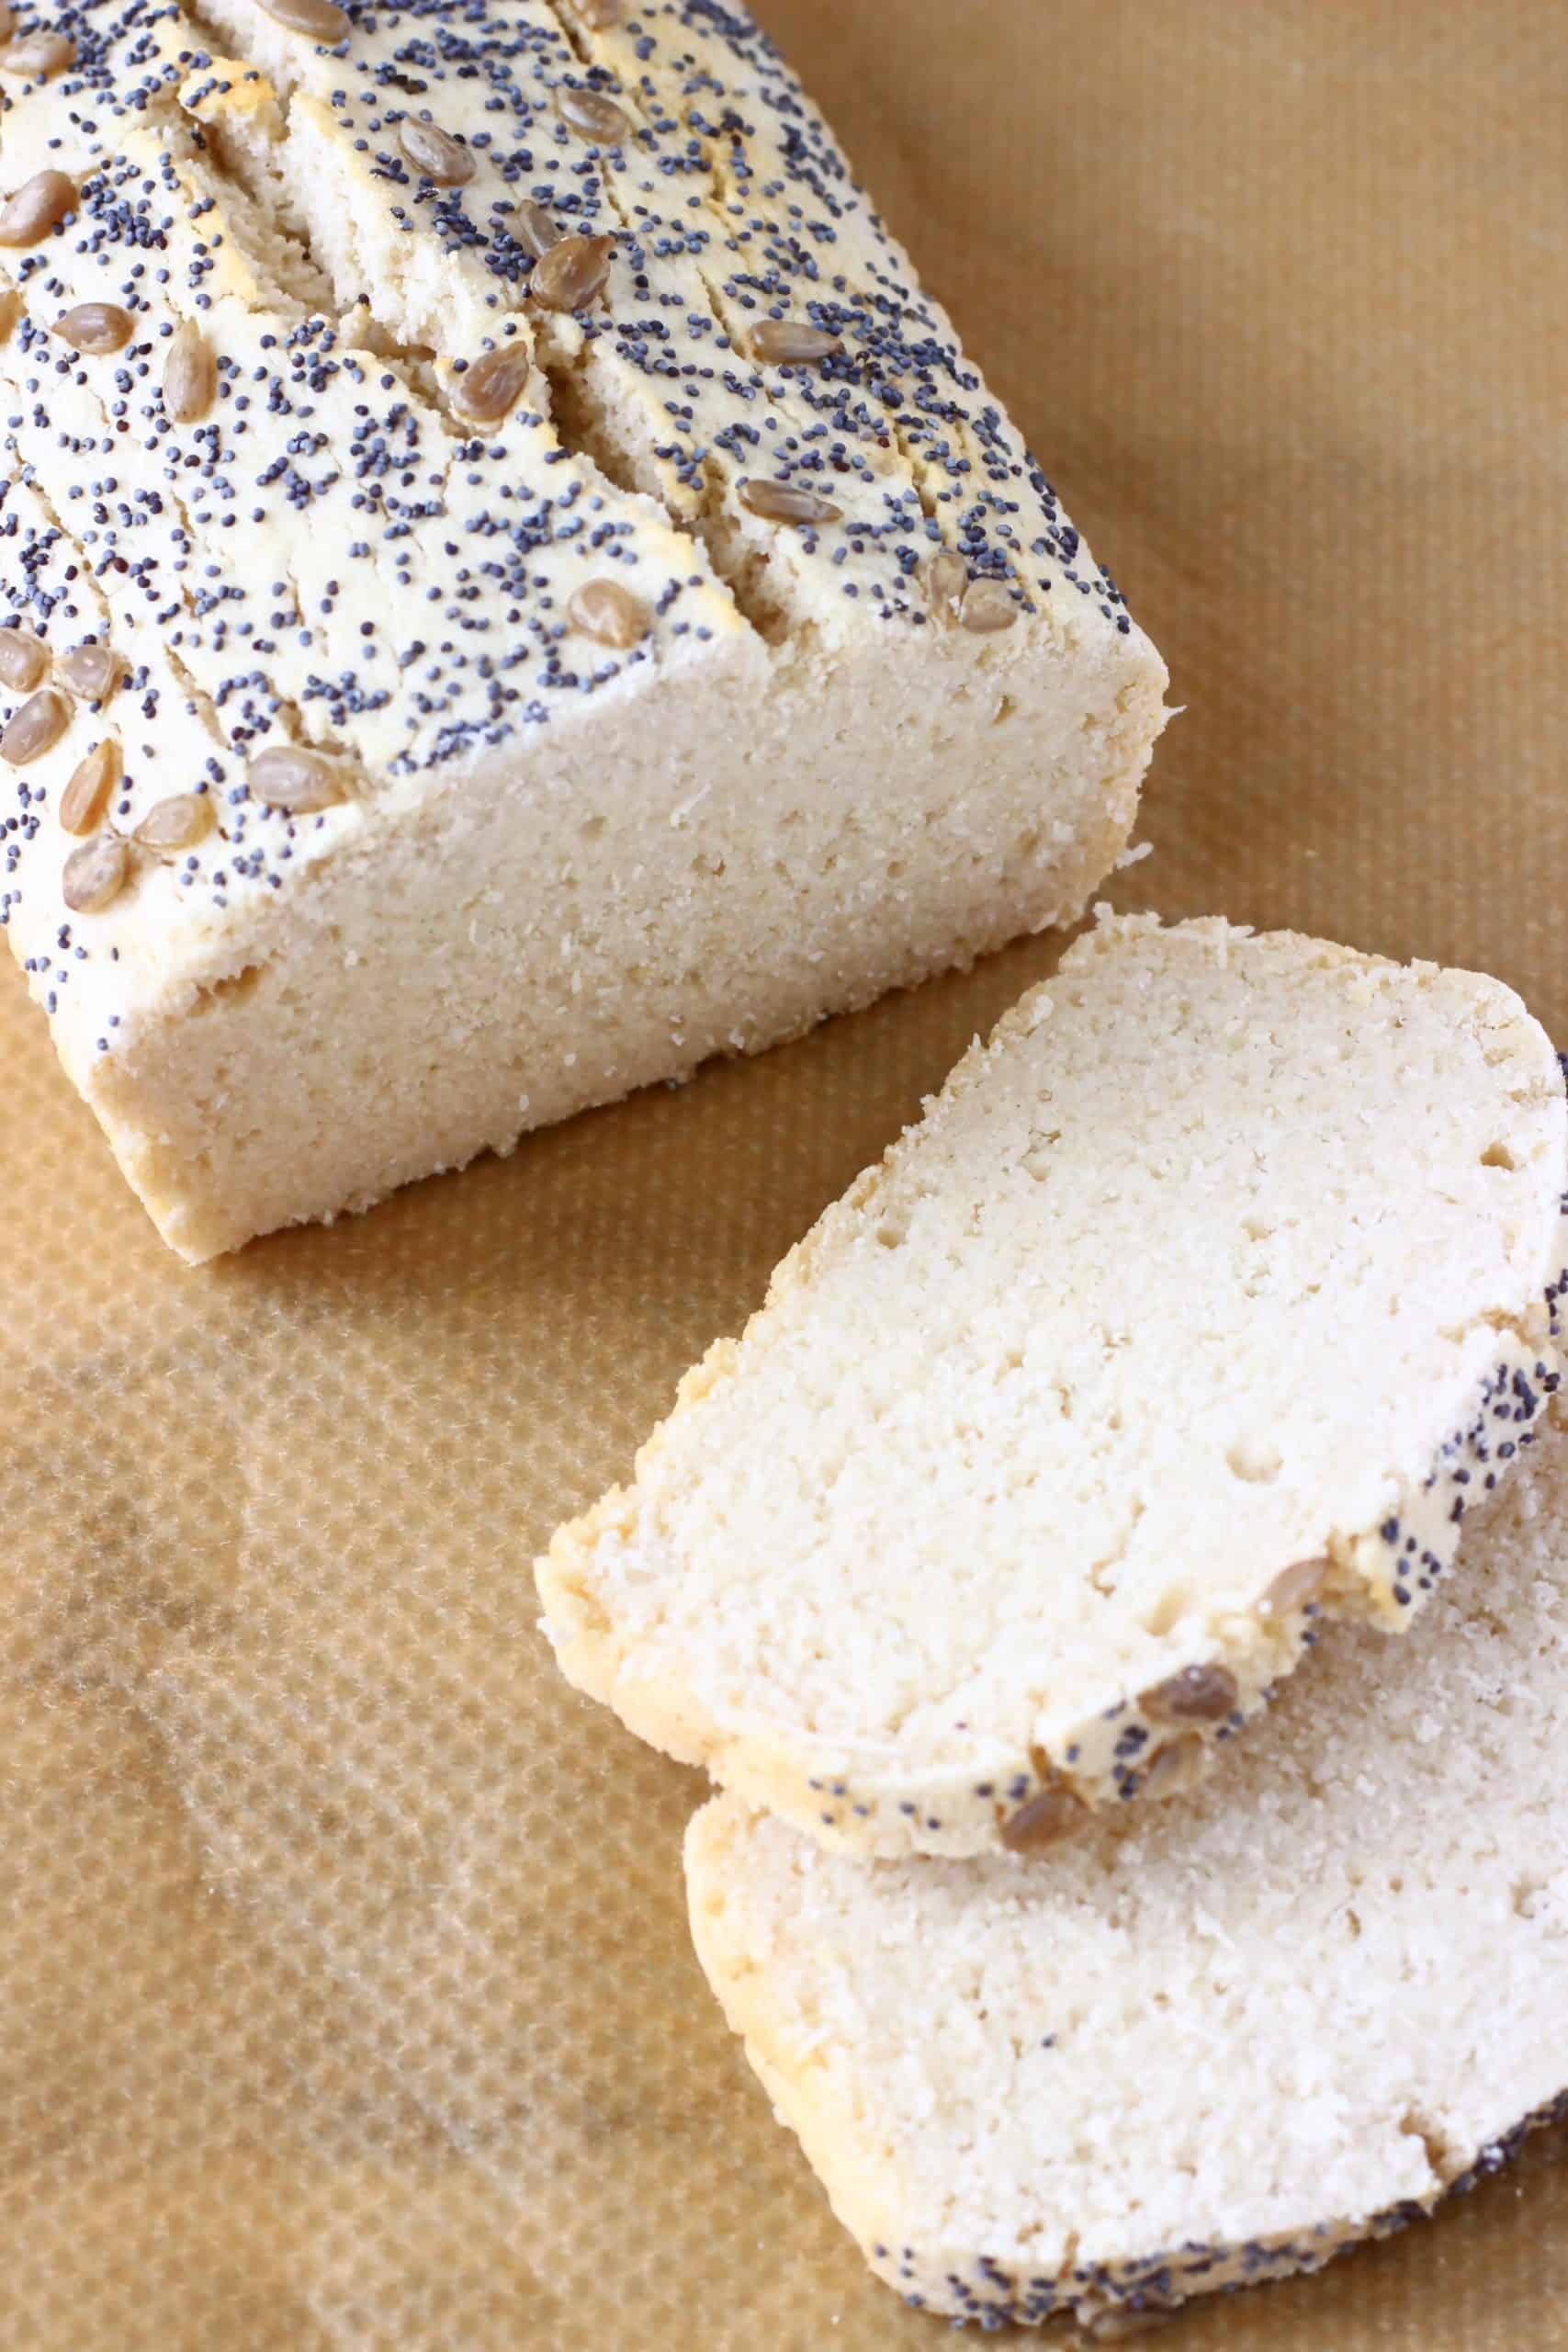 A loaf of rice flour bread with two slices next to it